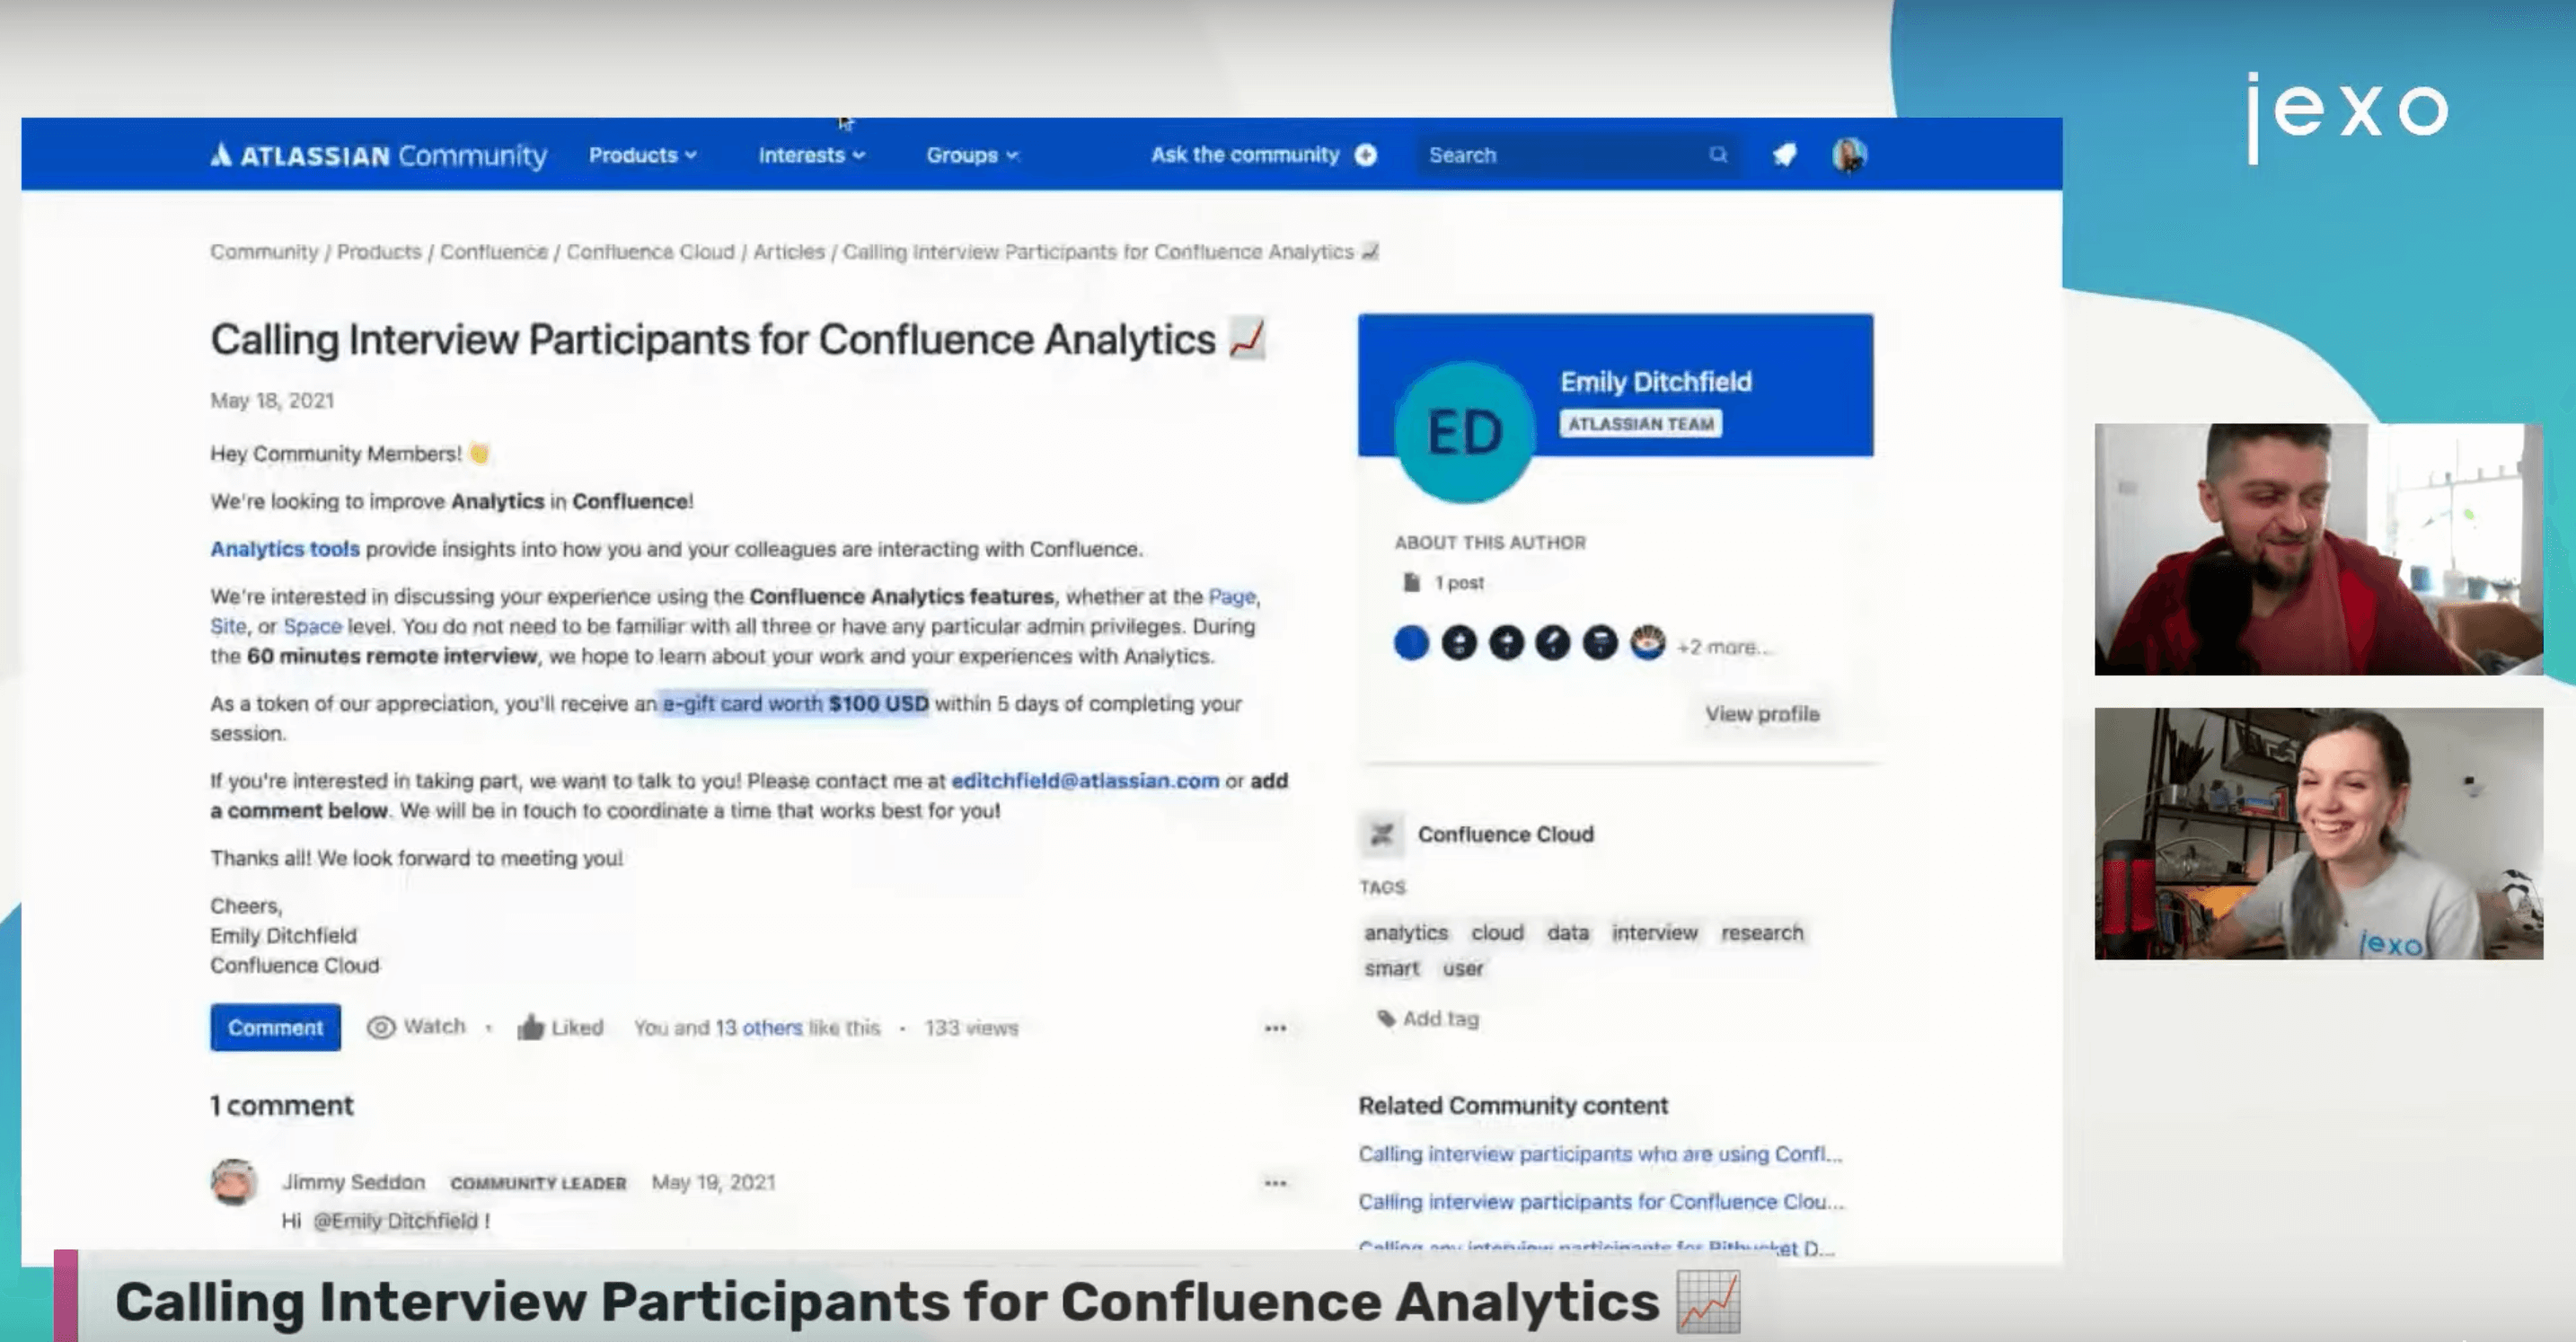 Monday coffee with Jexo: We discussed Confluence analytics feedback